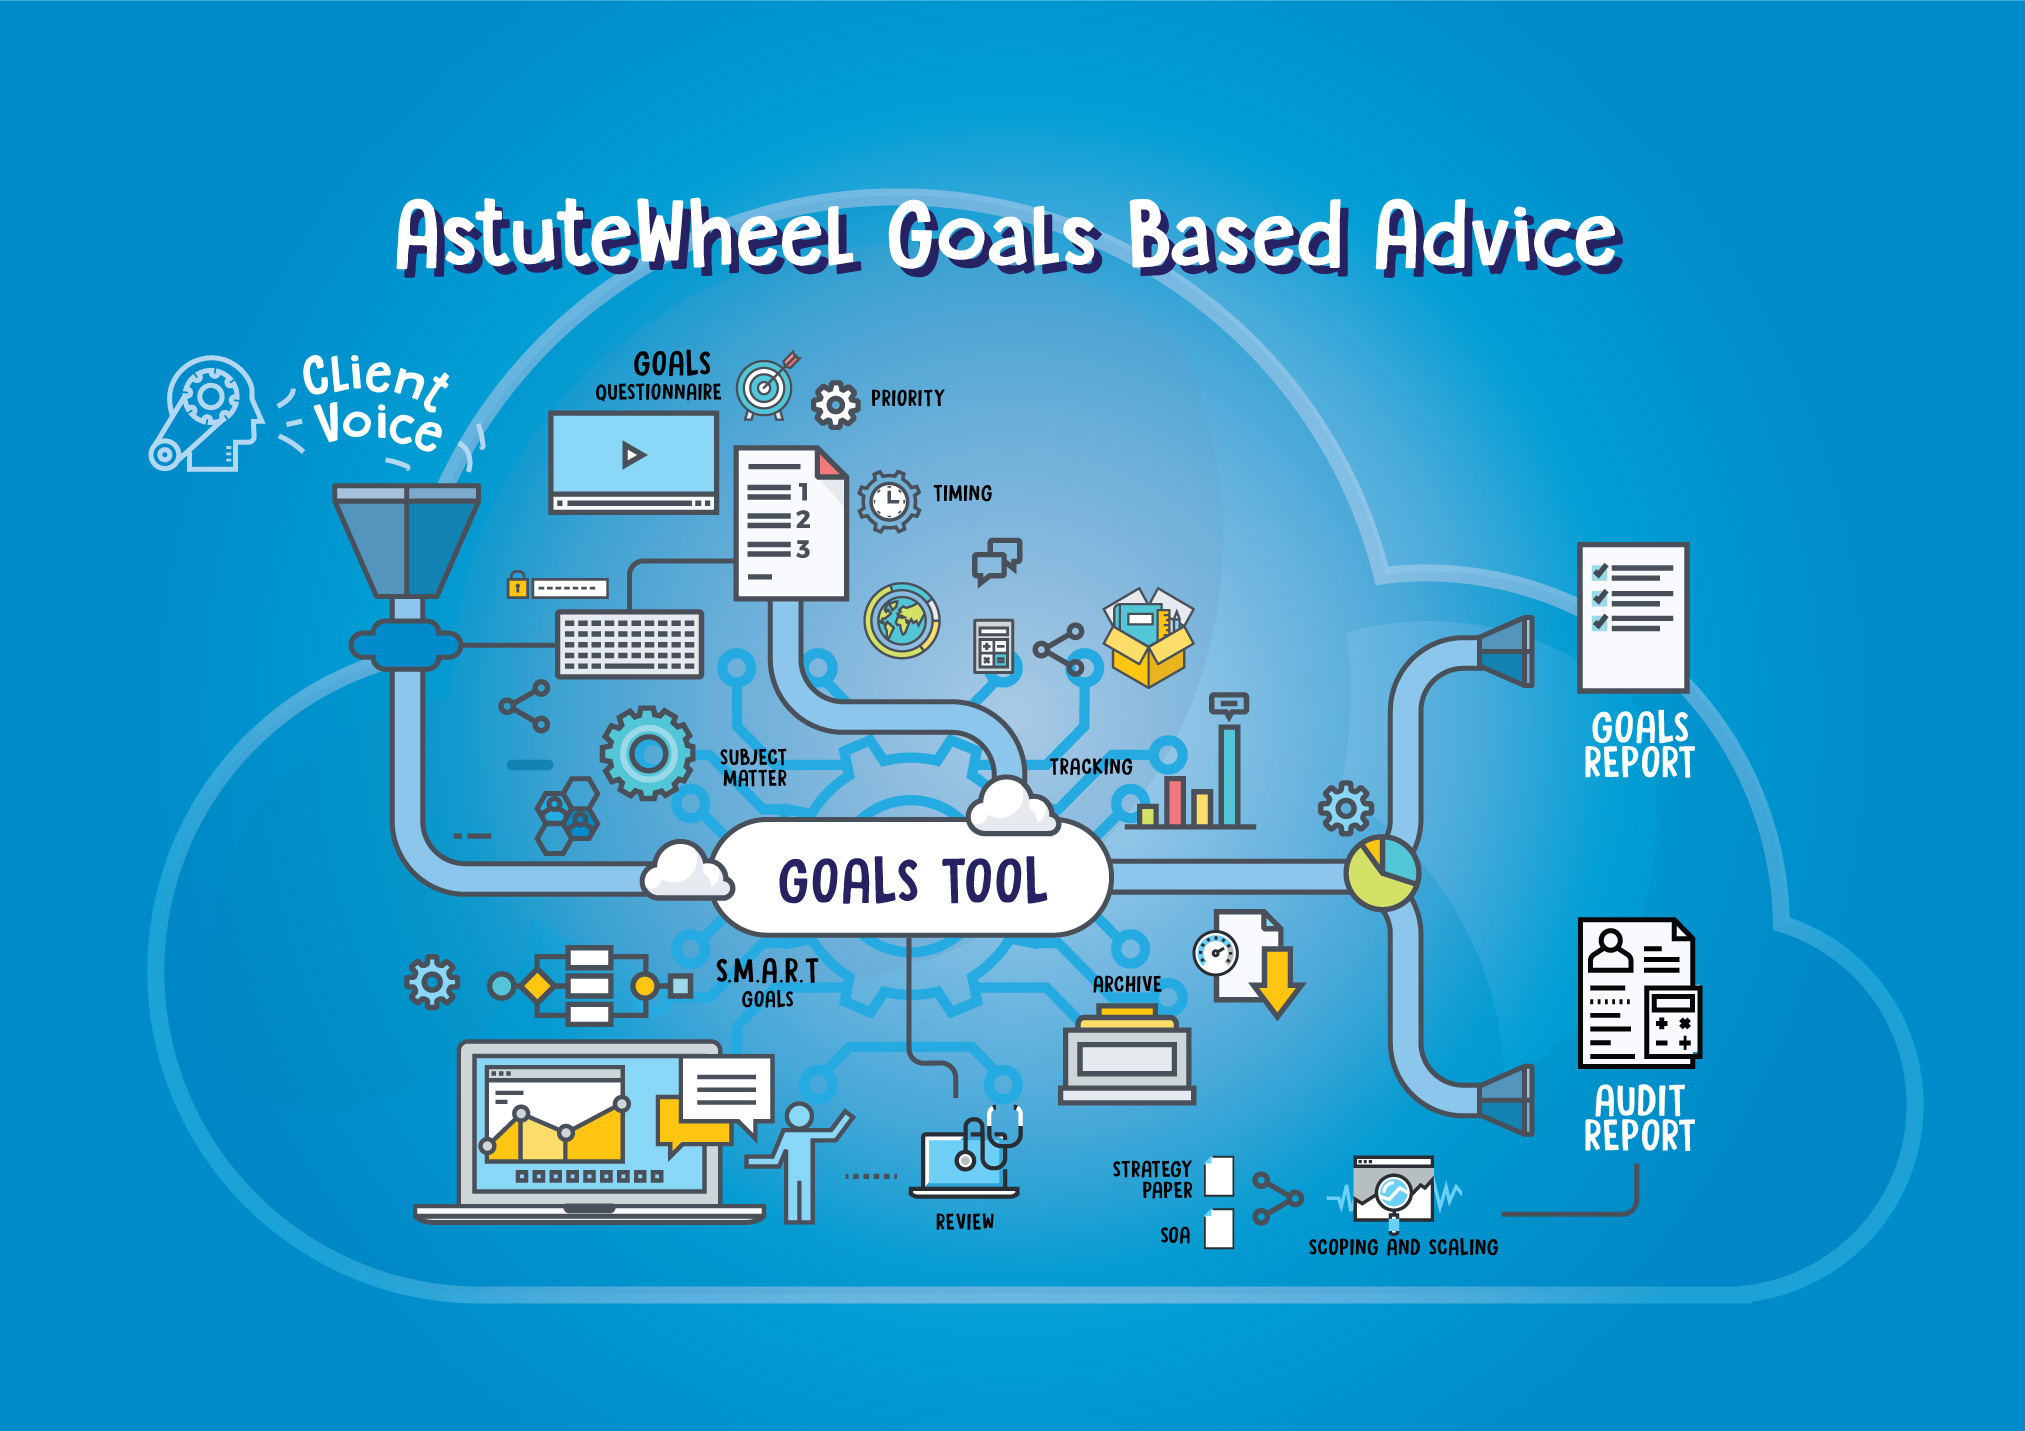 Goals based advice can be as complex or straightforward as you decide to make it.